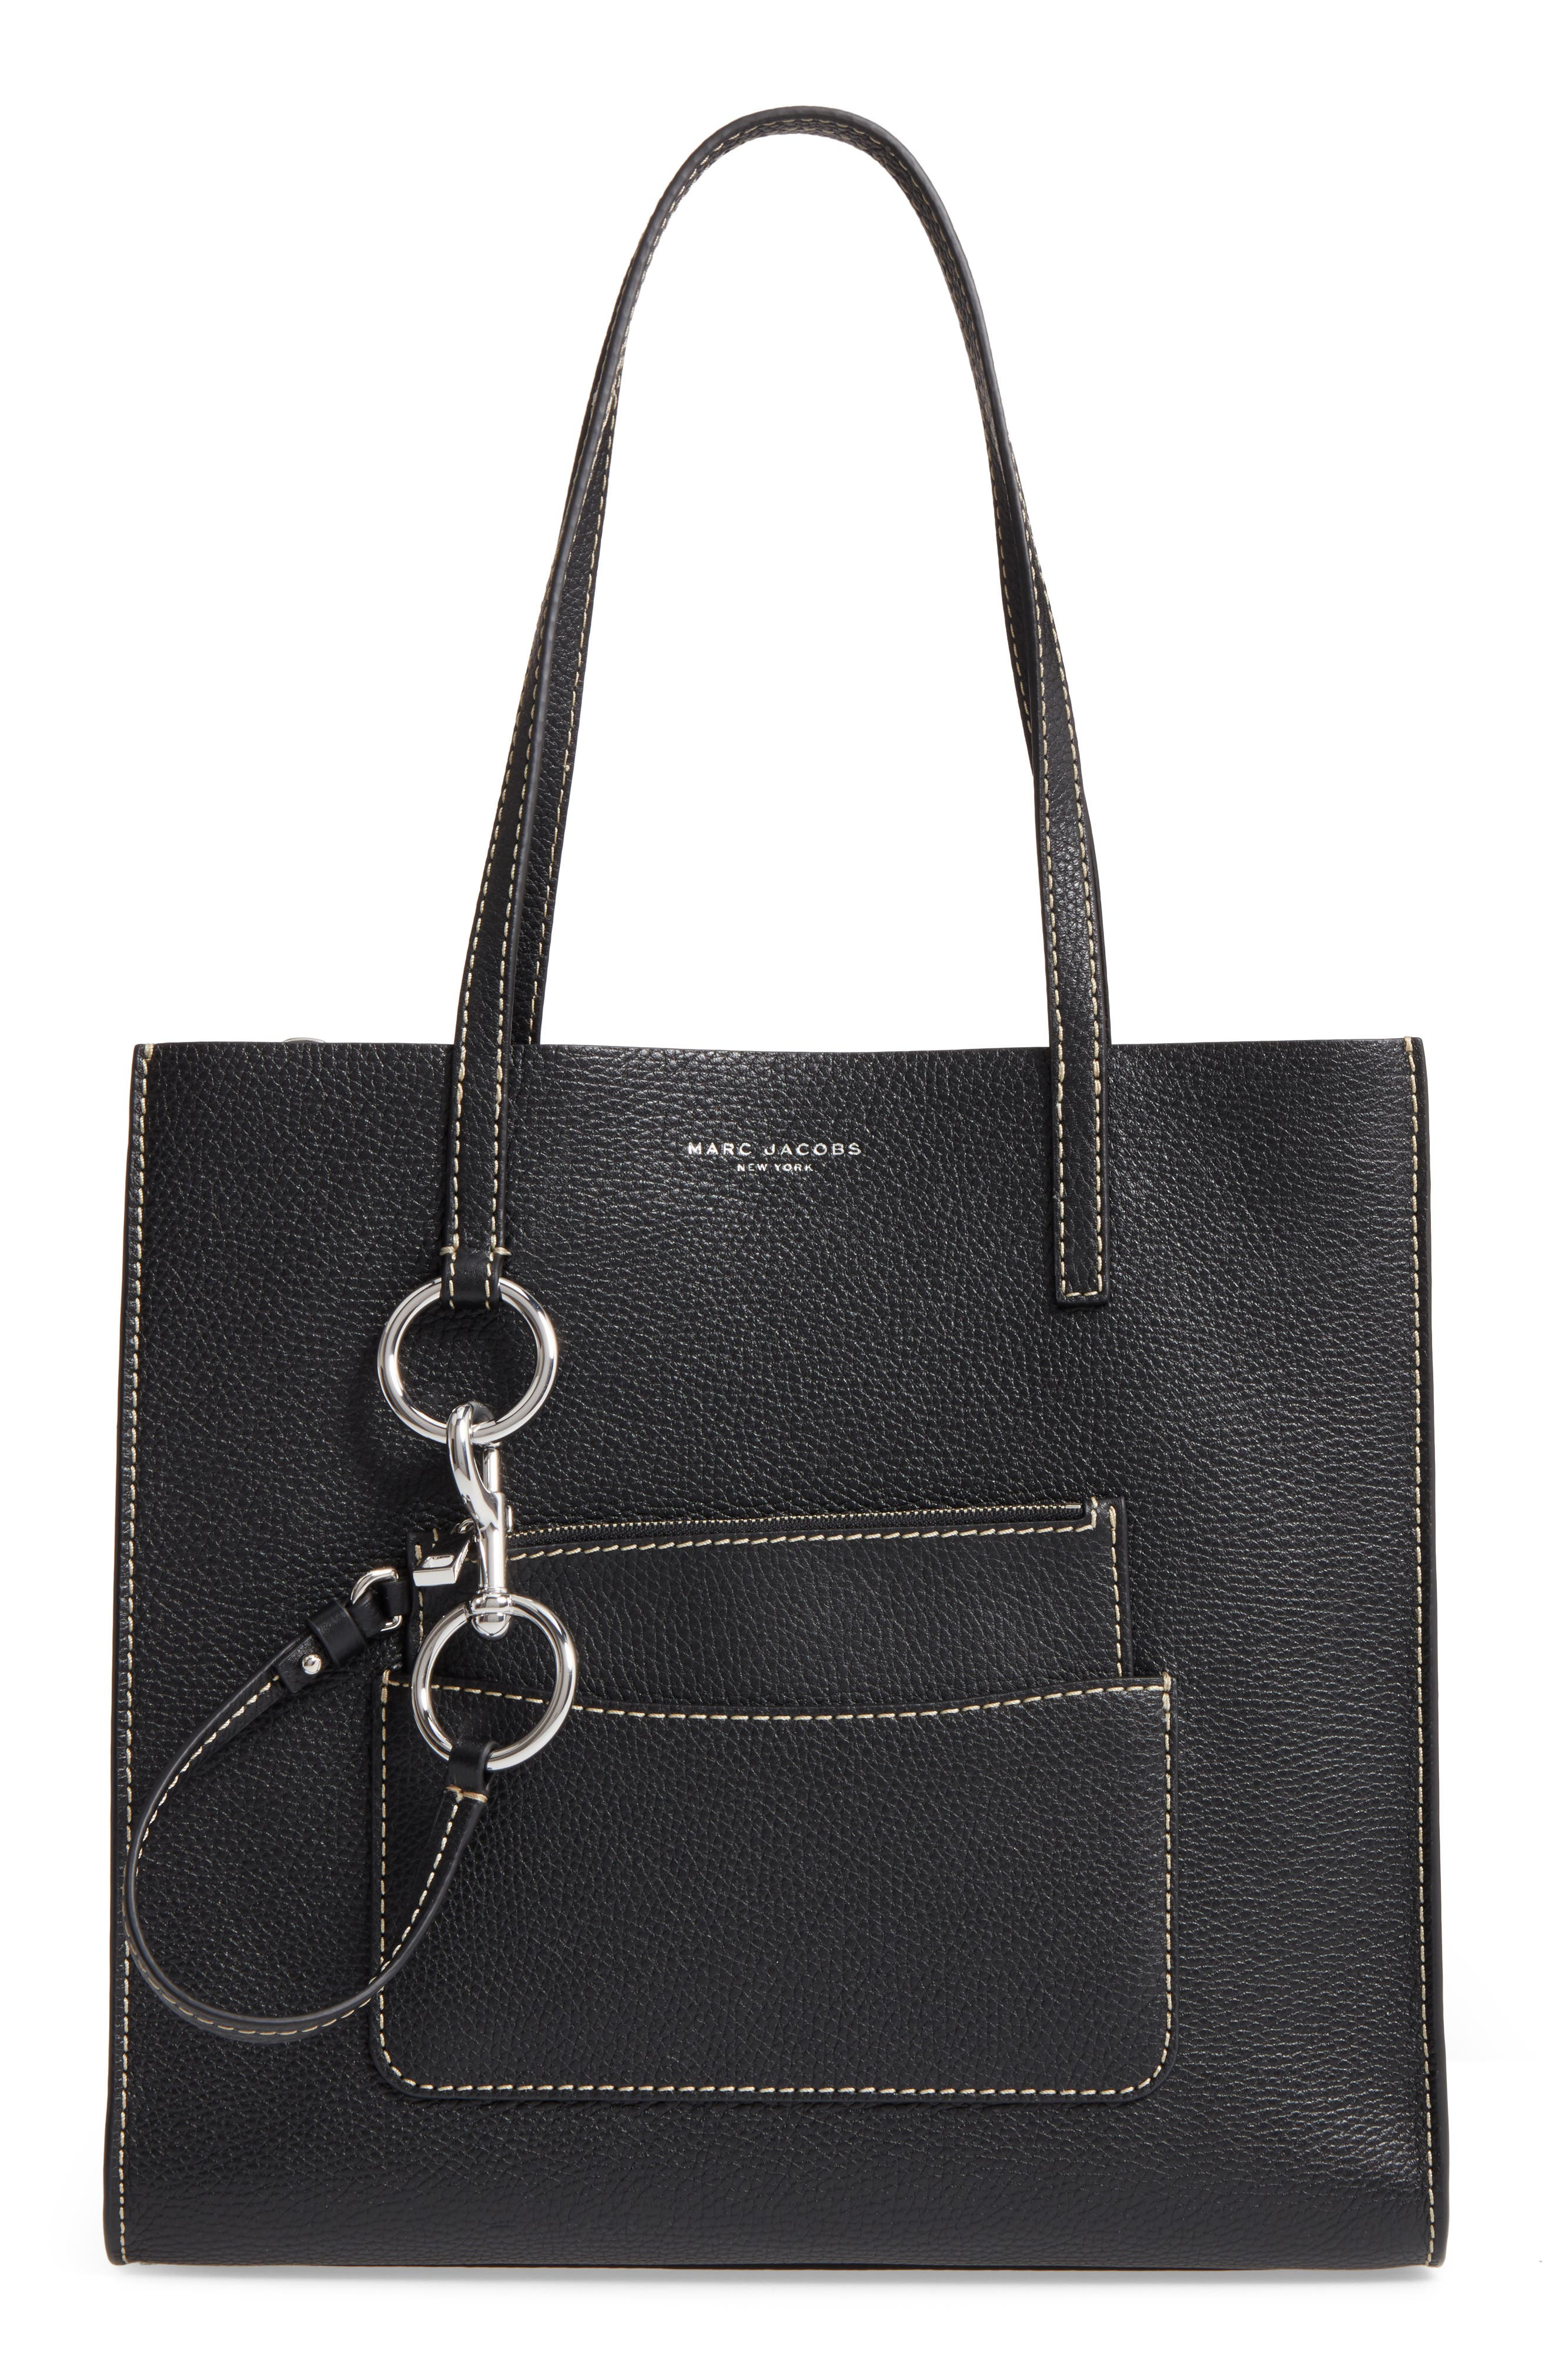 MARC JACOBS The Bold Grind Leather Pocket Tote